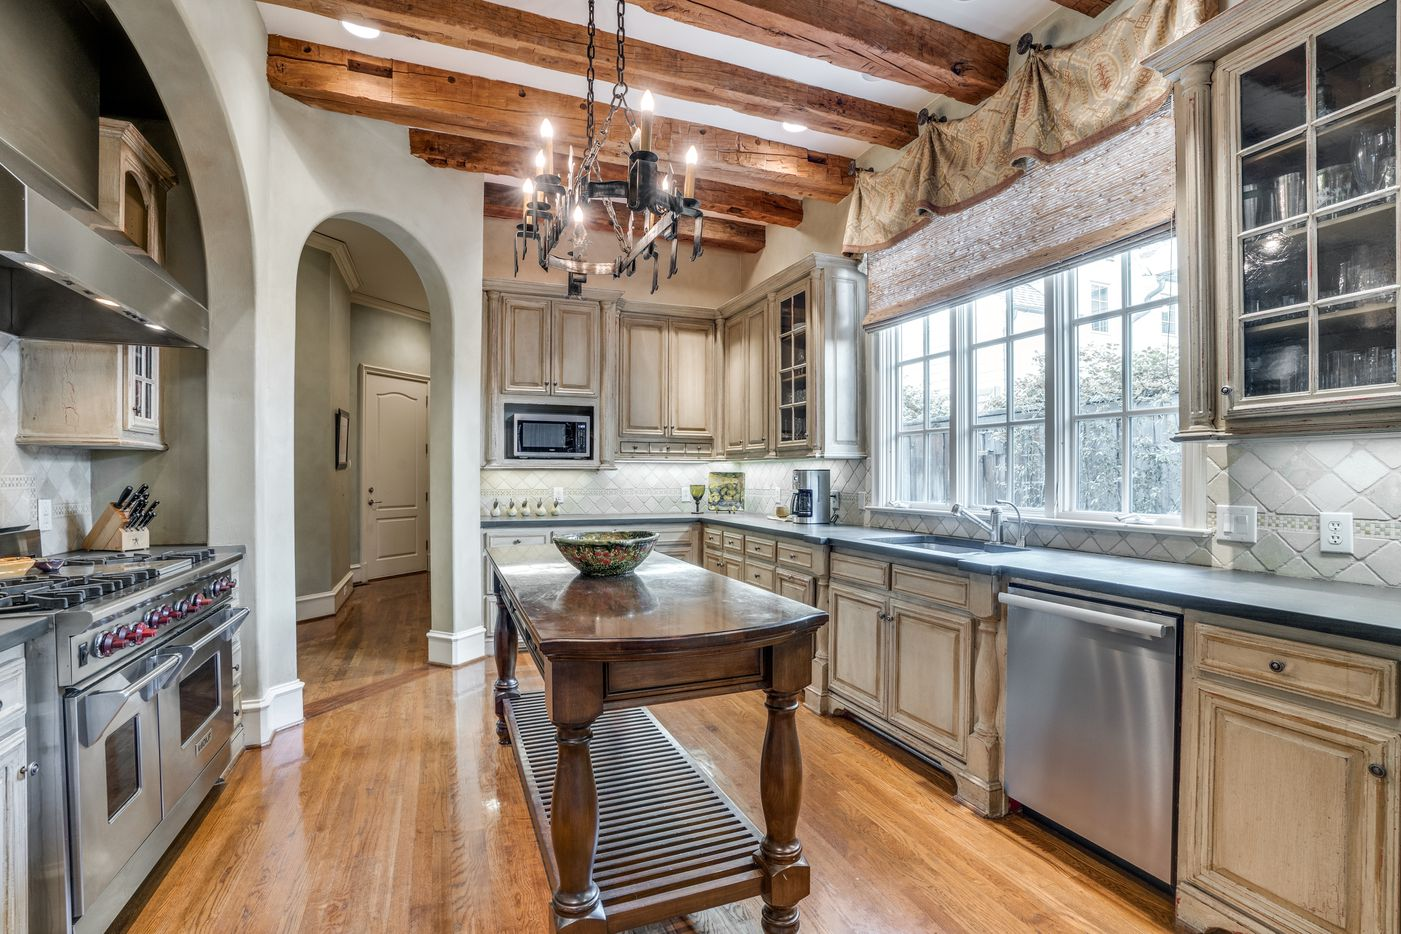 Take a look at the home at 4500 Belclaire Ave. in Dallas.